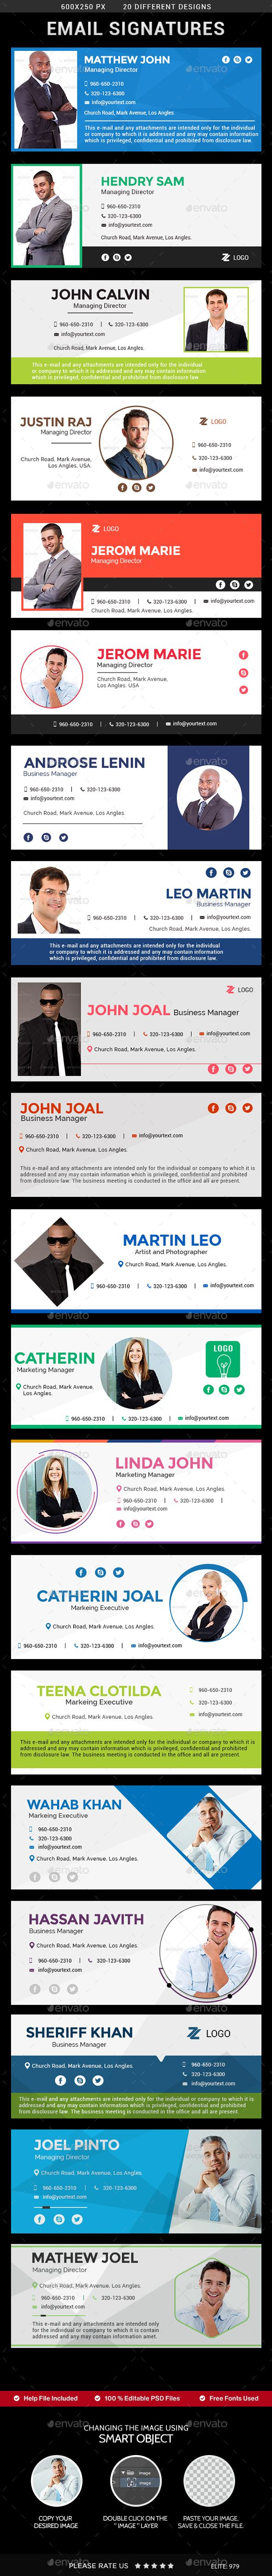 Email Signature Templates  Clean & Professional Design  Multipurpose Use  Completely editable  Easily customizable PSD Templates